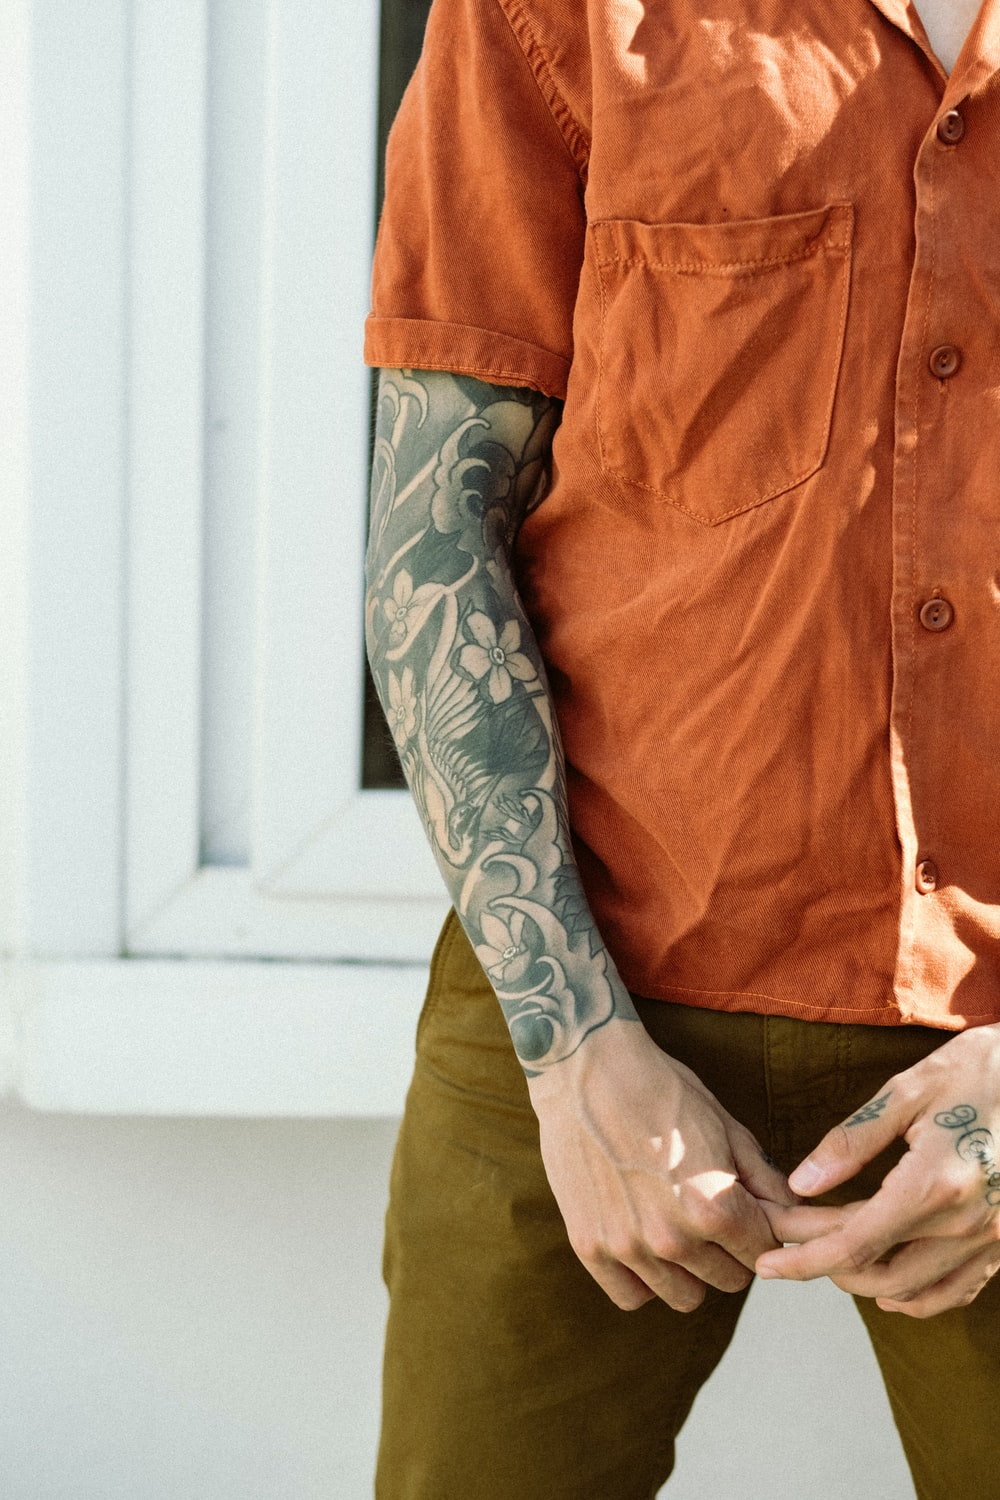 man in orange button up shirt with black and gray arm tattoo